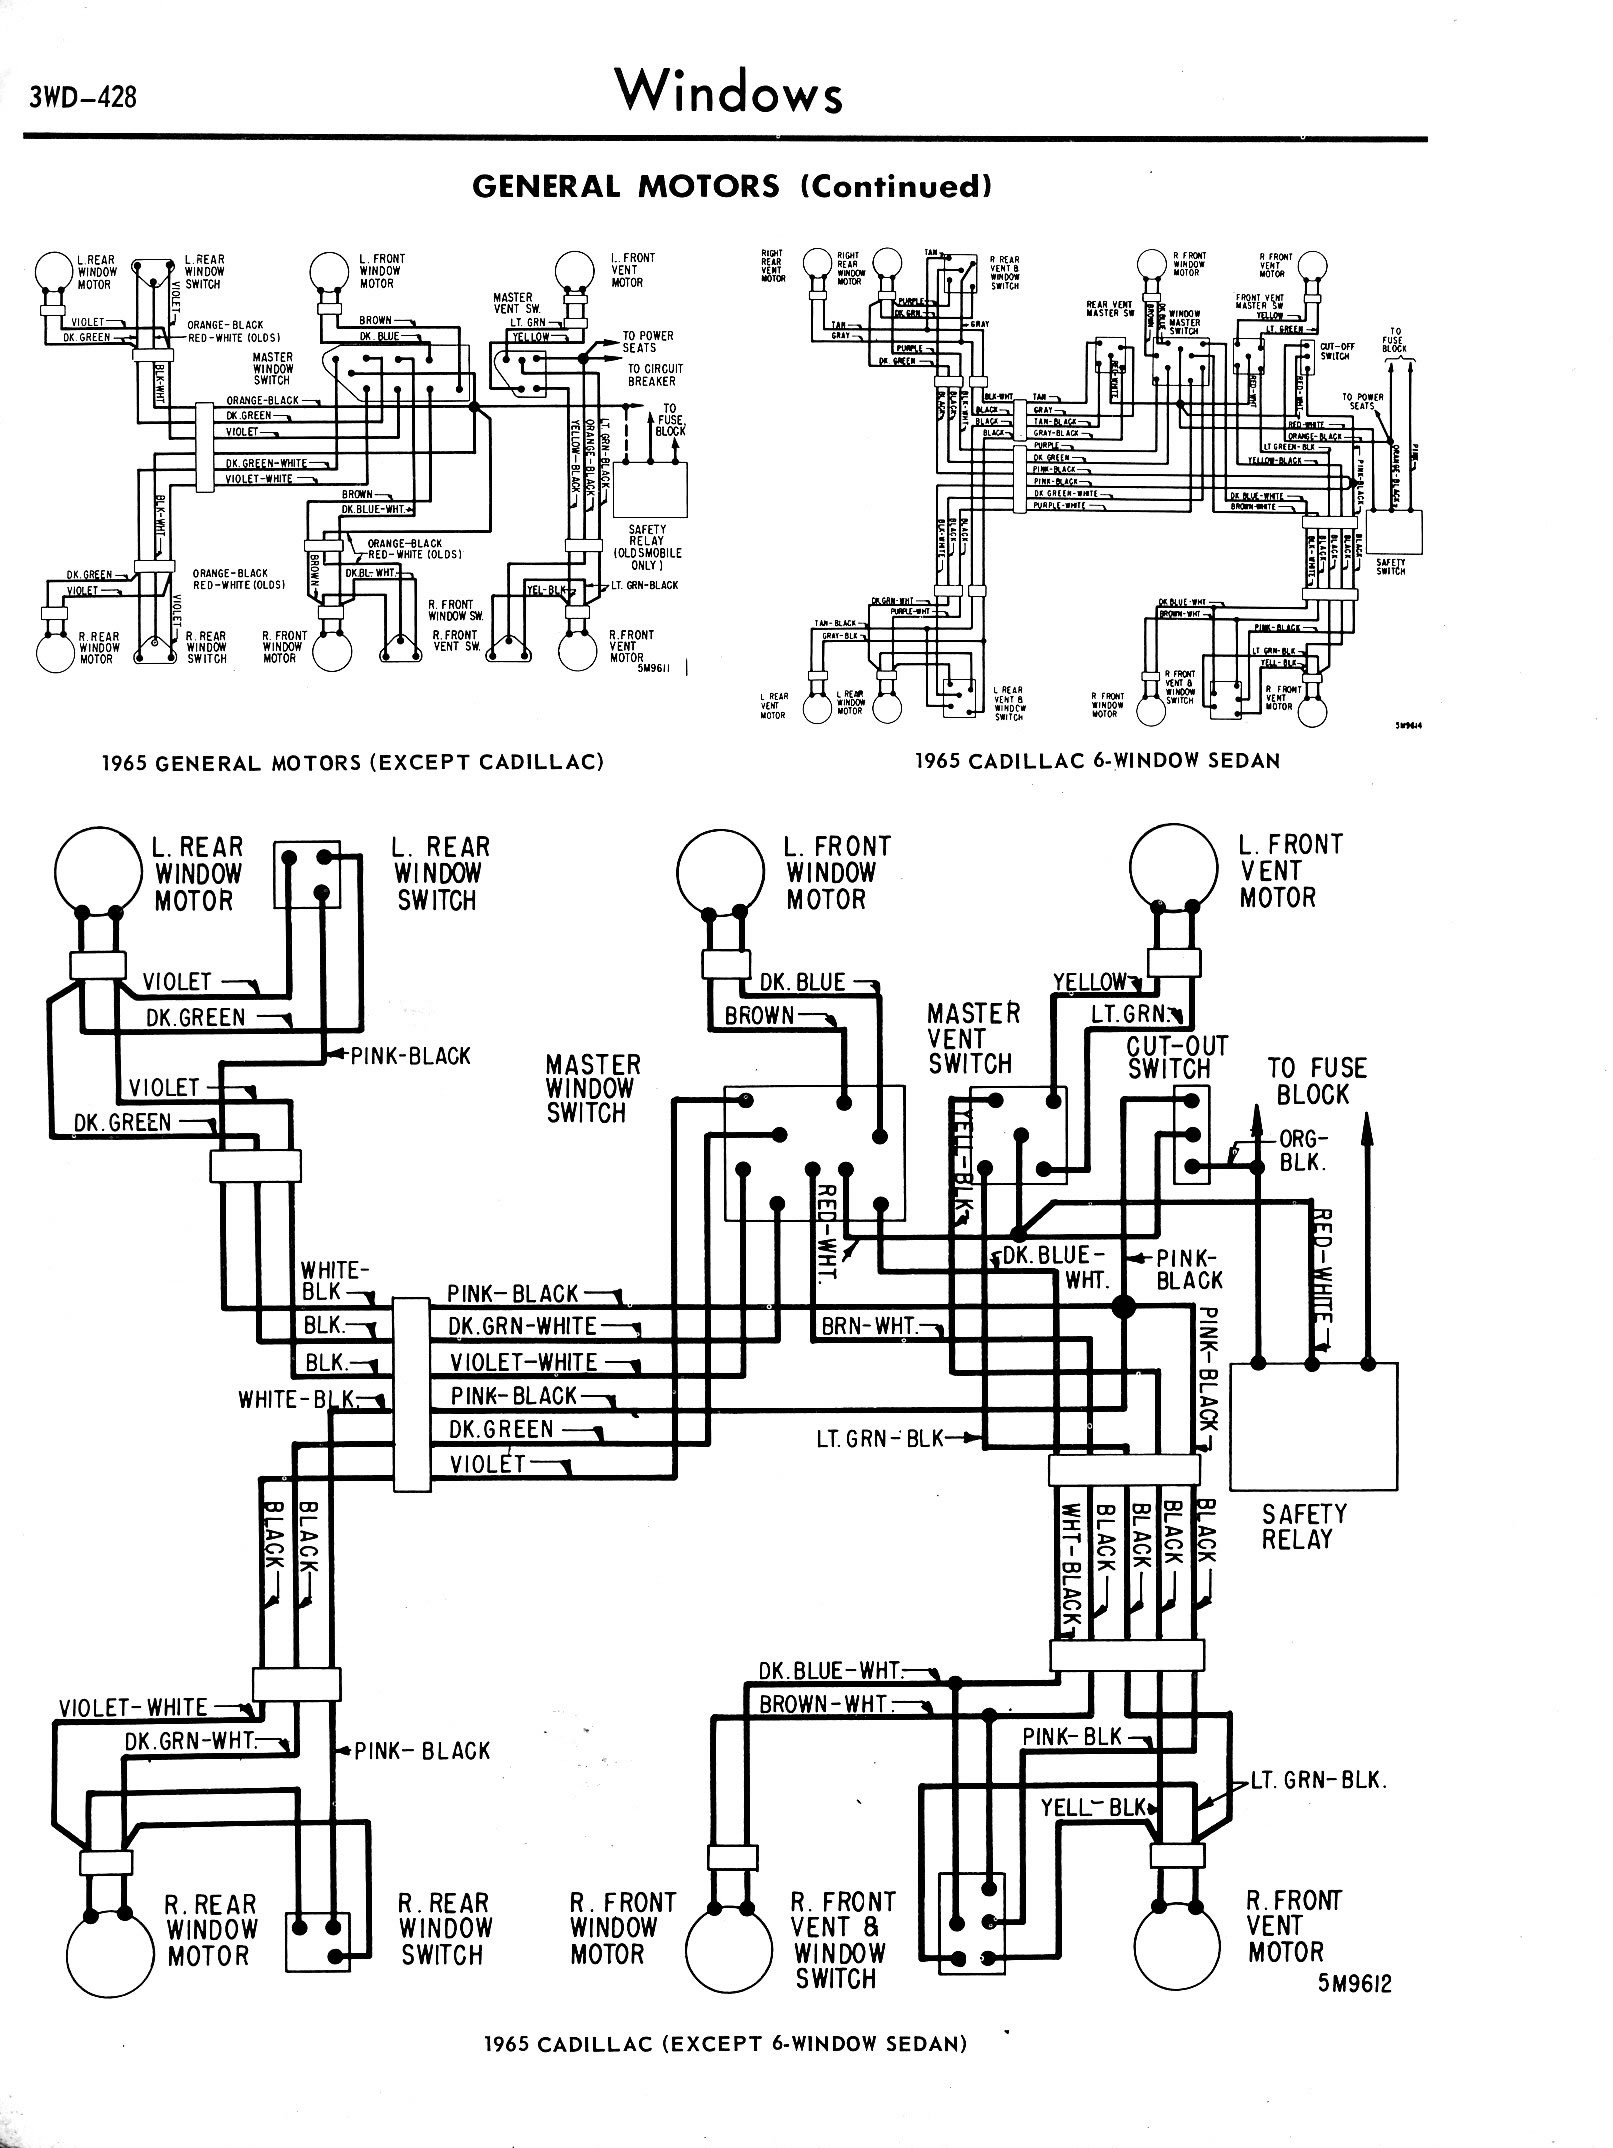 3WD-428_jpg Accessory Wiring Diagram on